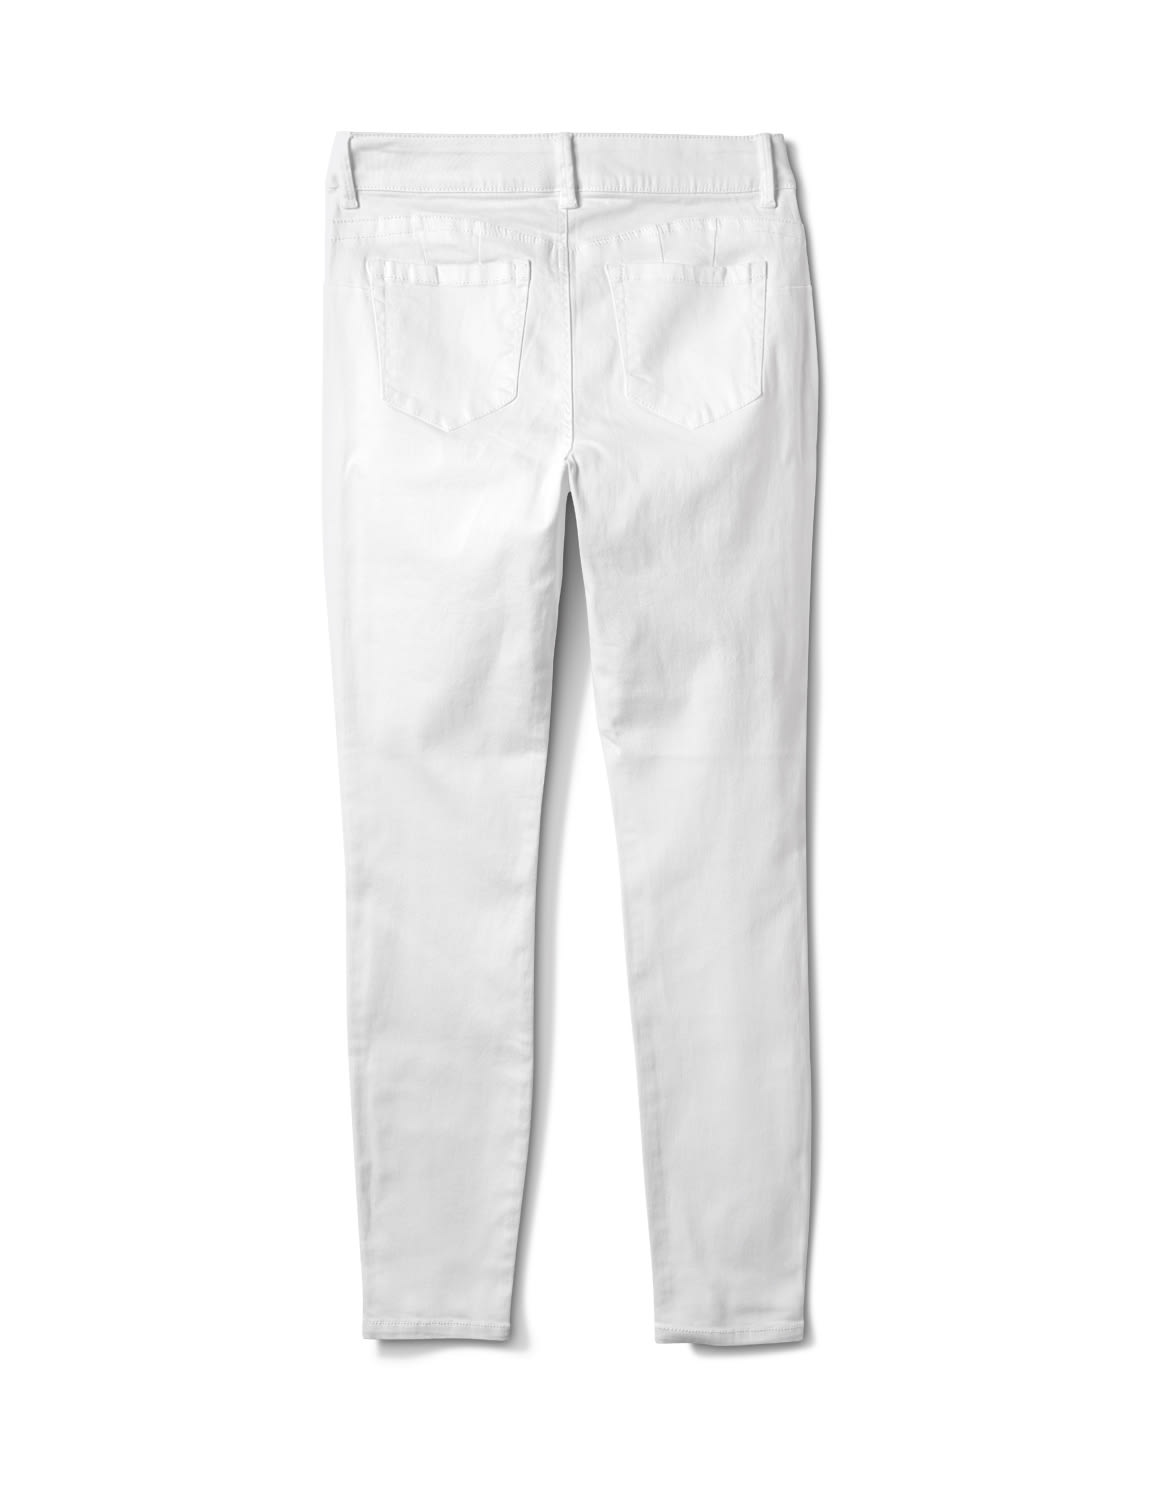 Mid Rise 5 Pocket Goddess Fit Solution Jeans - White - Back